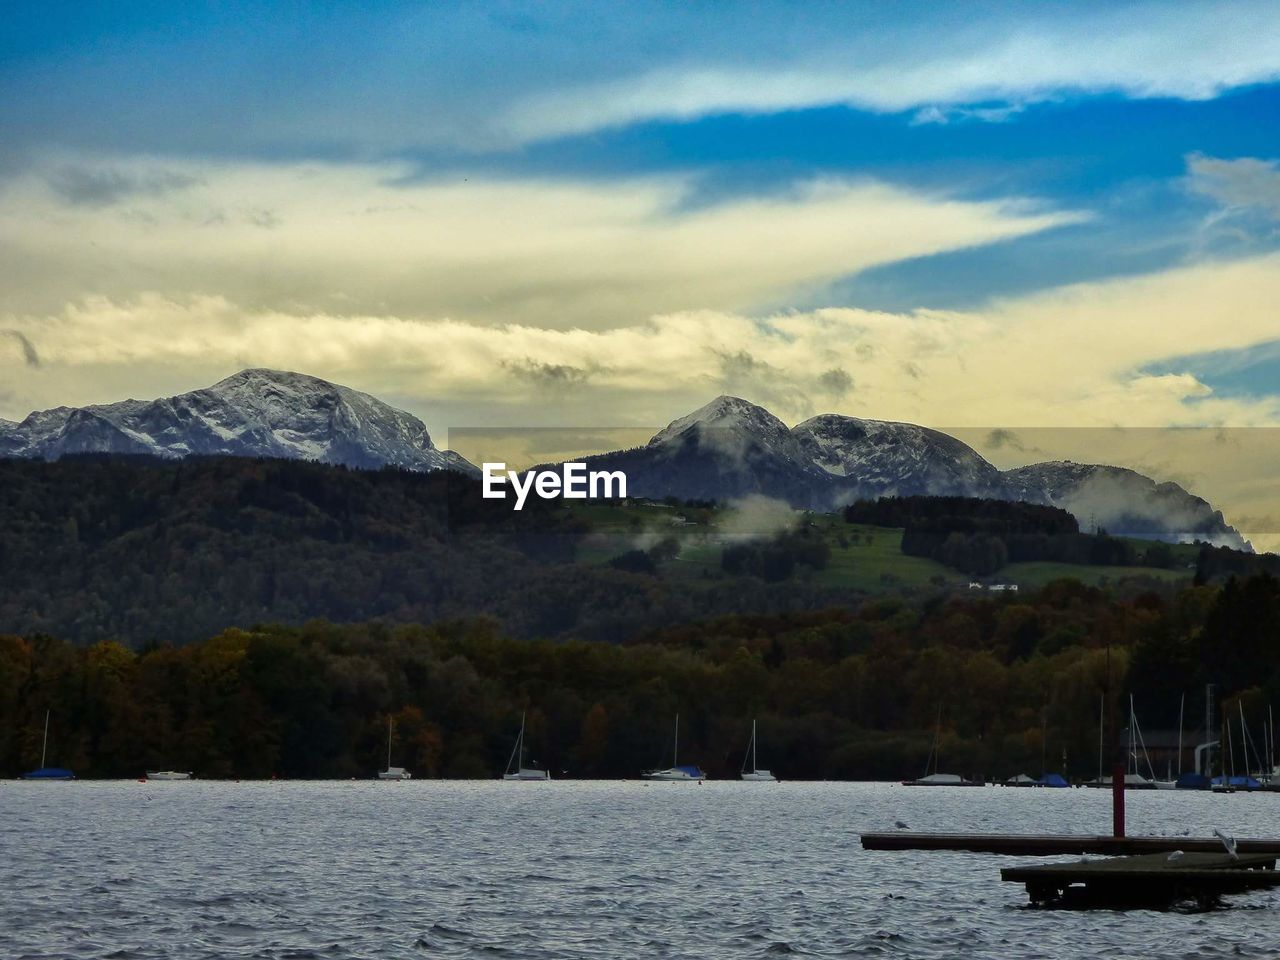 mountain, water, mountain range, scenics, nature, tranquility, sky, tranquil scene, beauty in nature, waterfront, no people, lake, outdoors, transportation, nautical vessel, cloud - sky, day, landscape